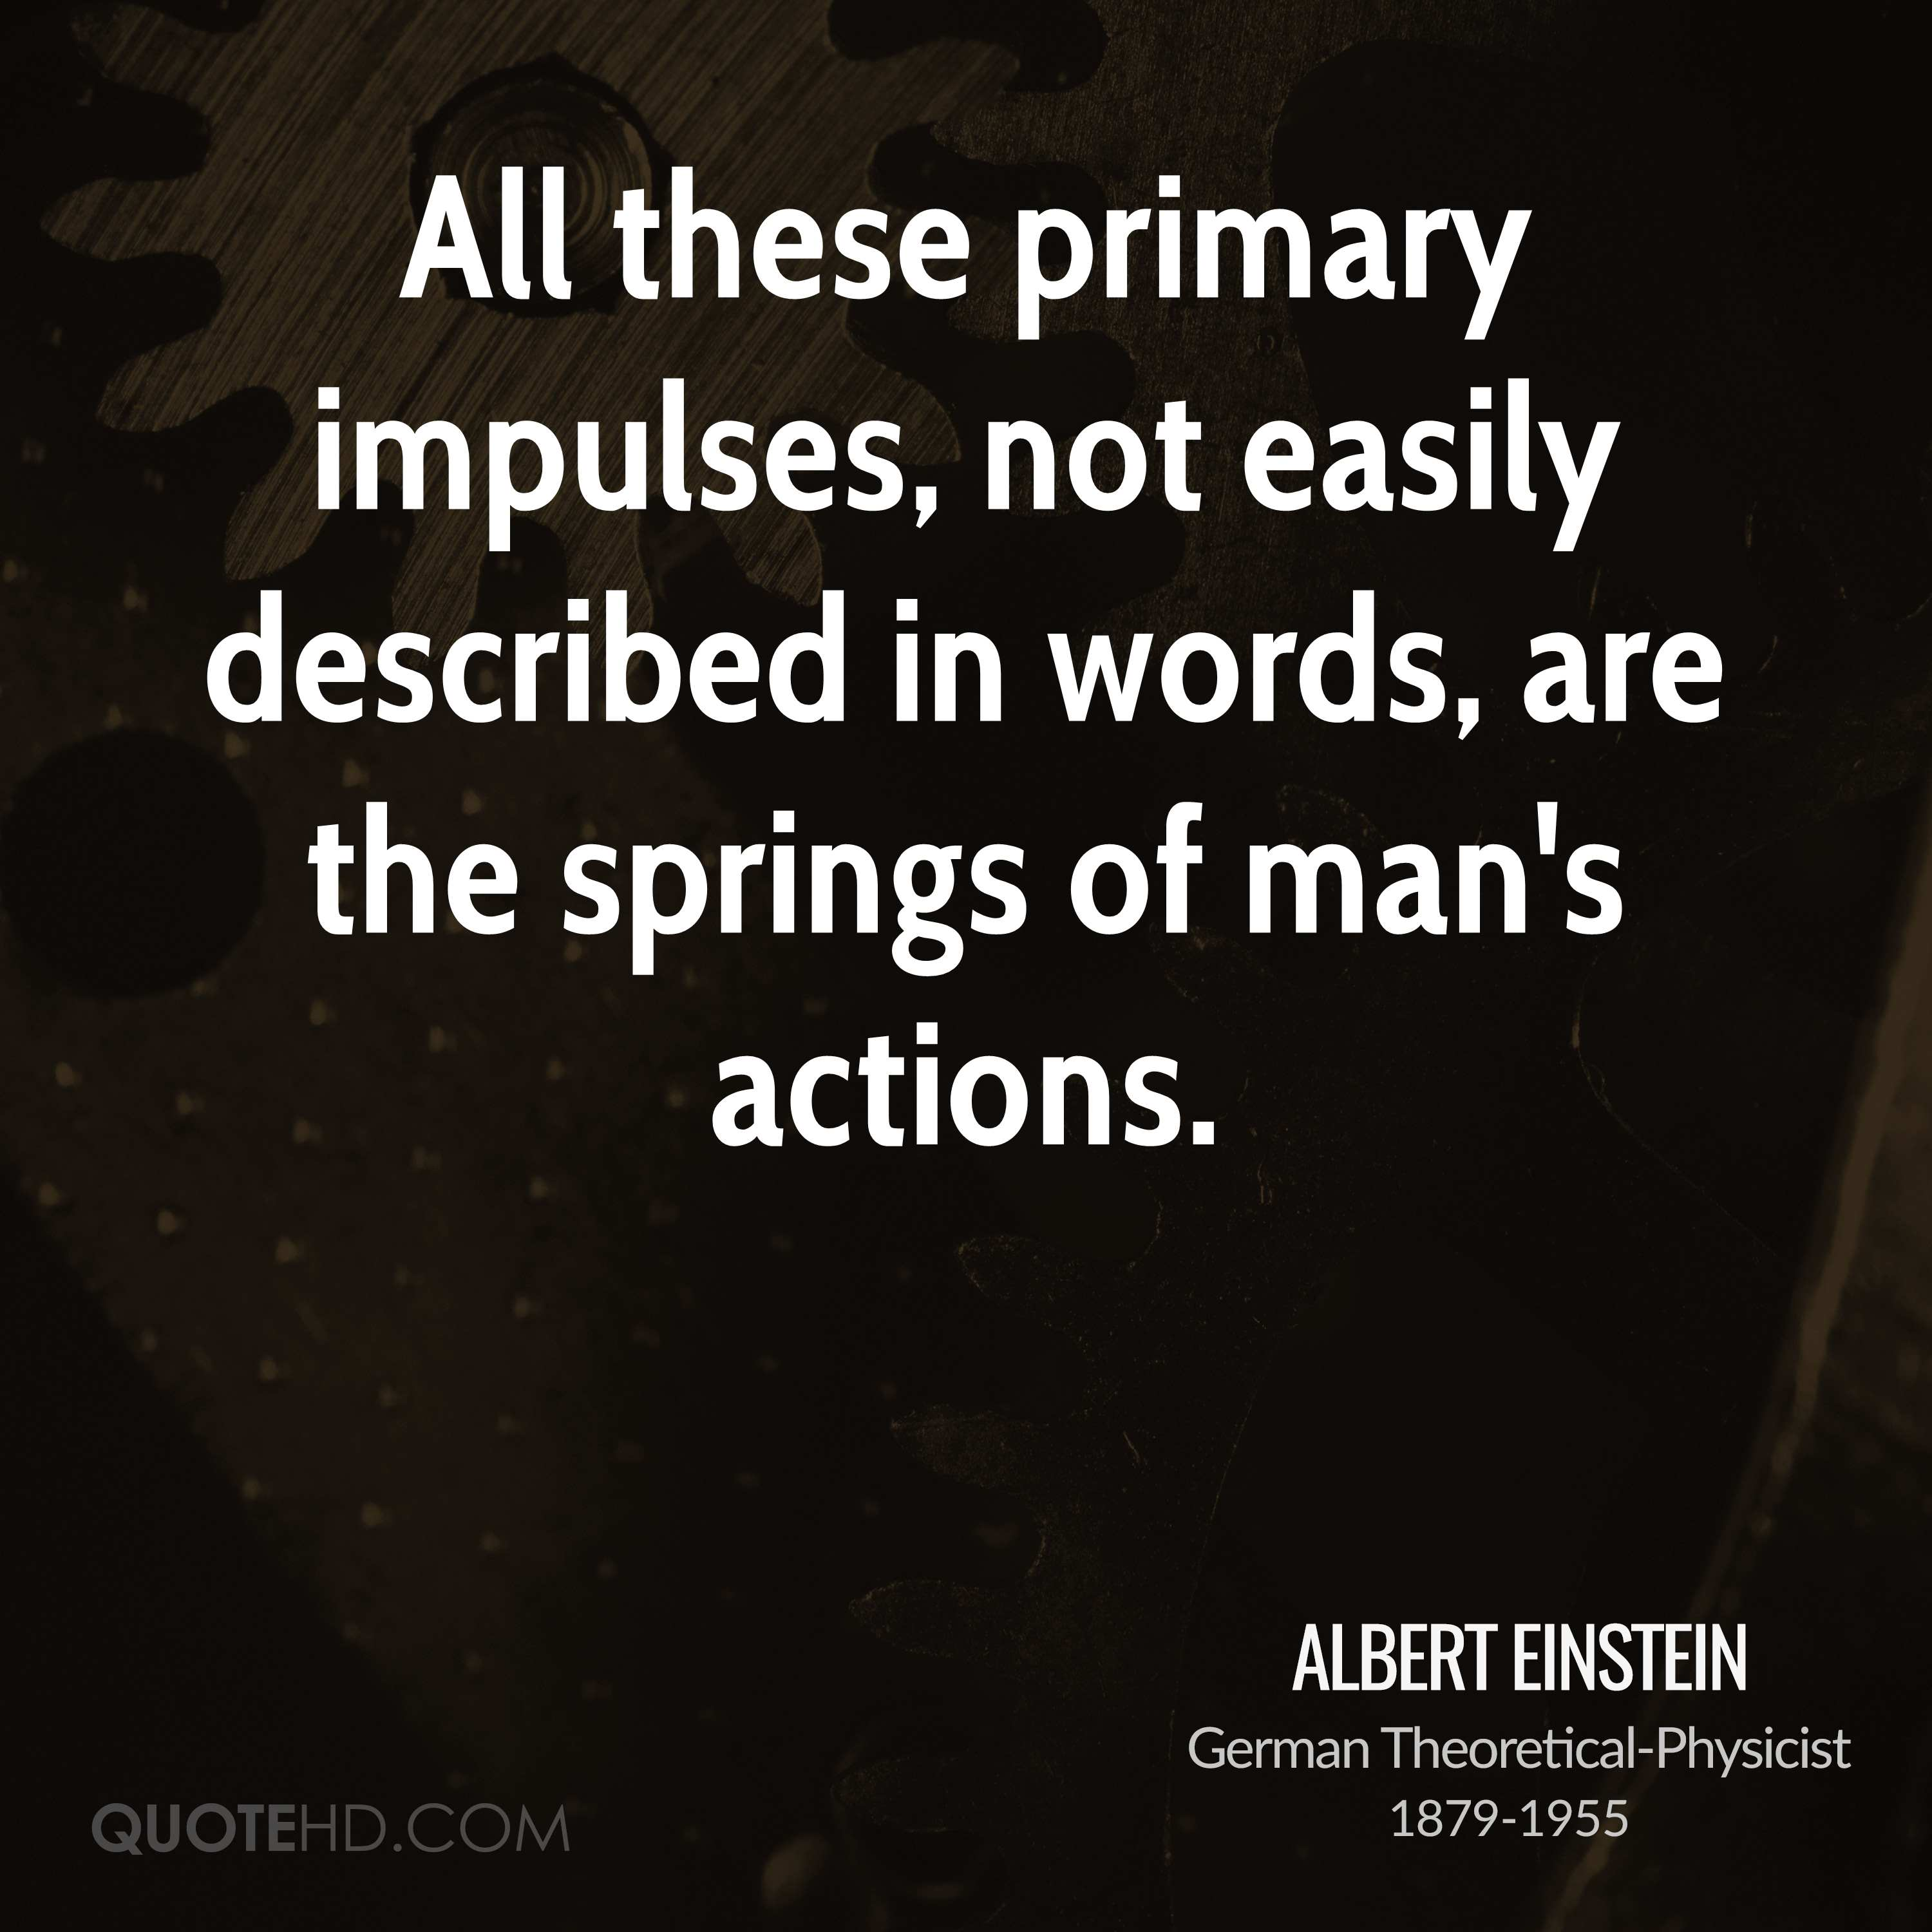 All these primary impulses, not easily described in words, are the springs of man's actions.